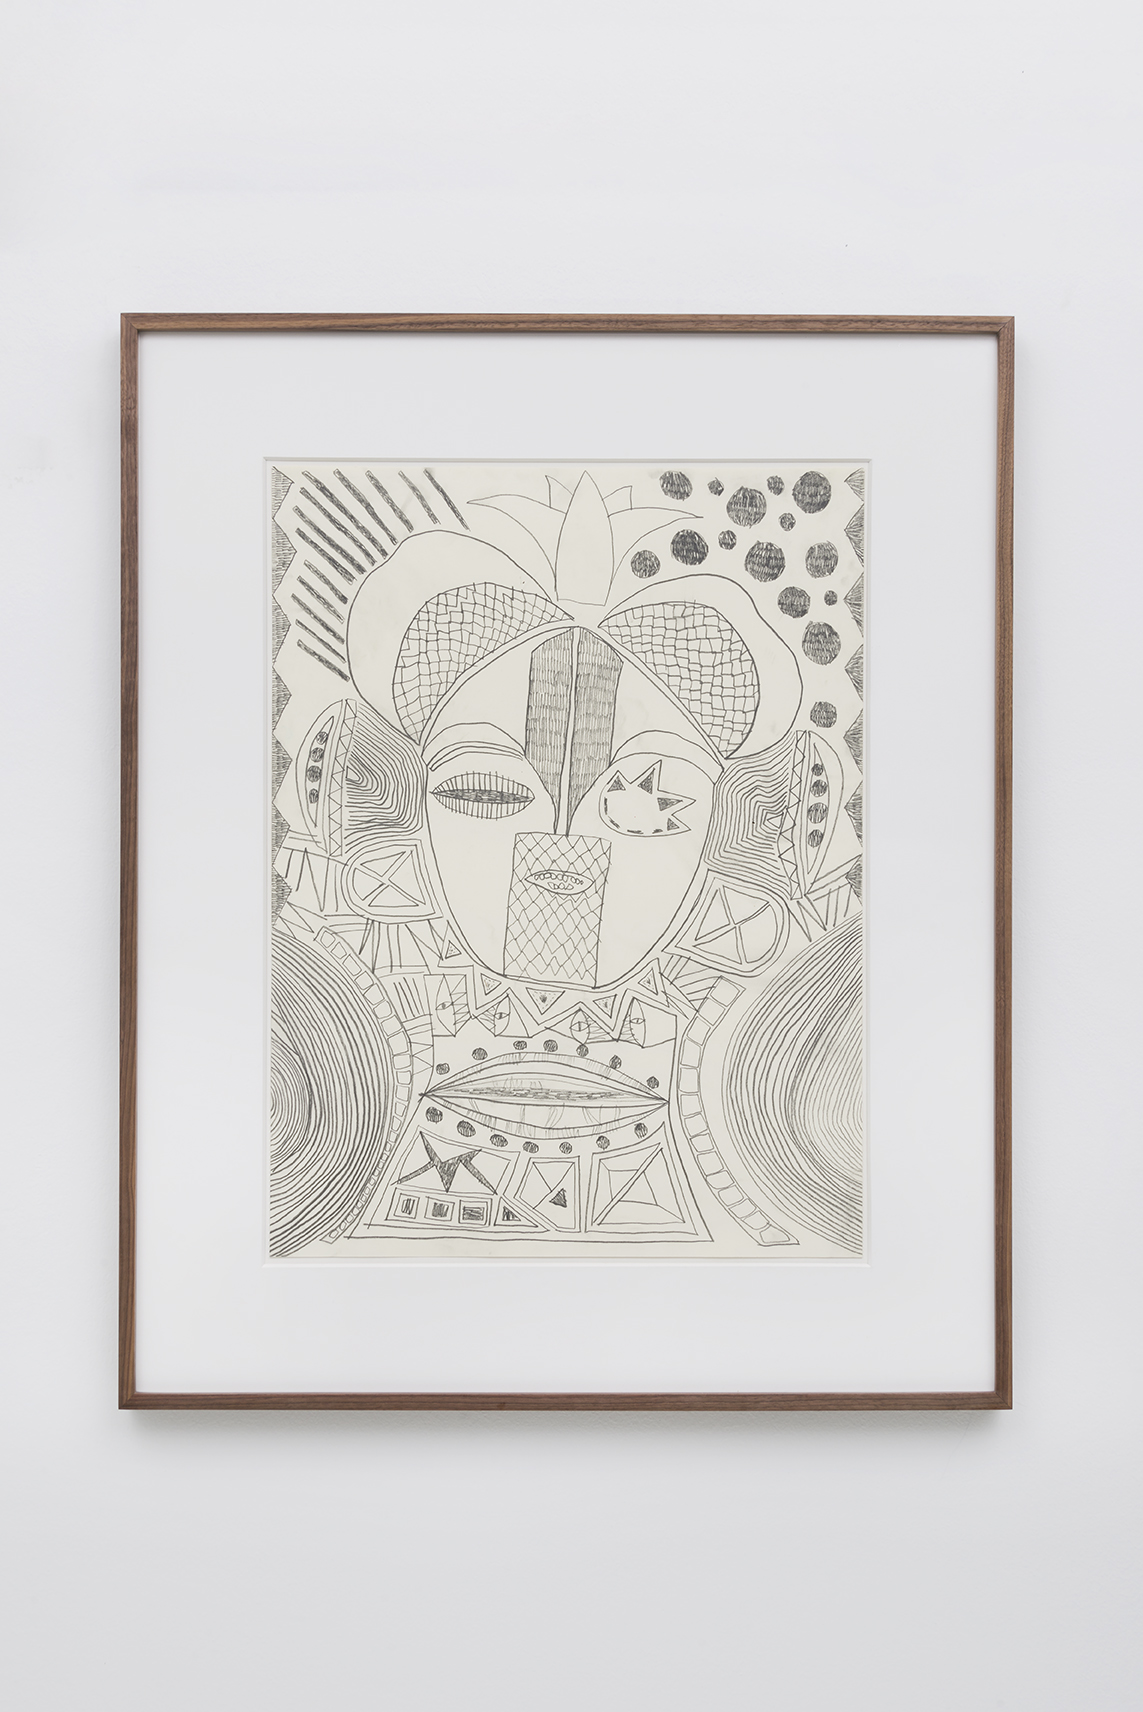 "Adam D. Miller - Neo Cyborg Pscyho scape - 2016 -  Graphite on Paper - 18 x 24"" drawing, 32 1/4 x 26 1/4"" Matted and Framed"